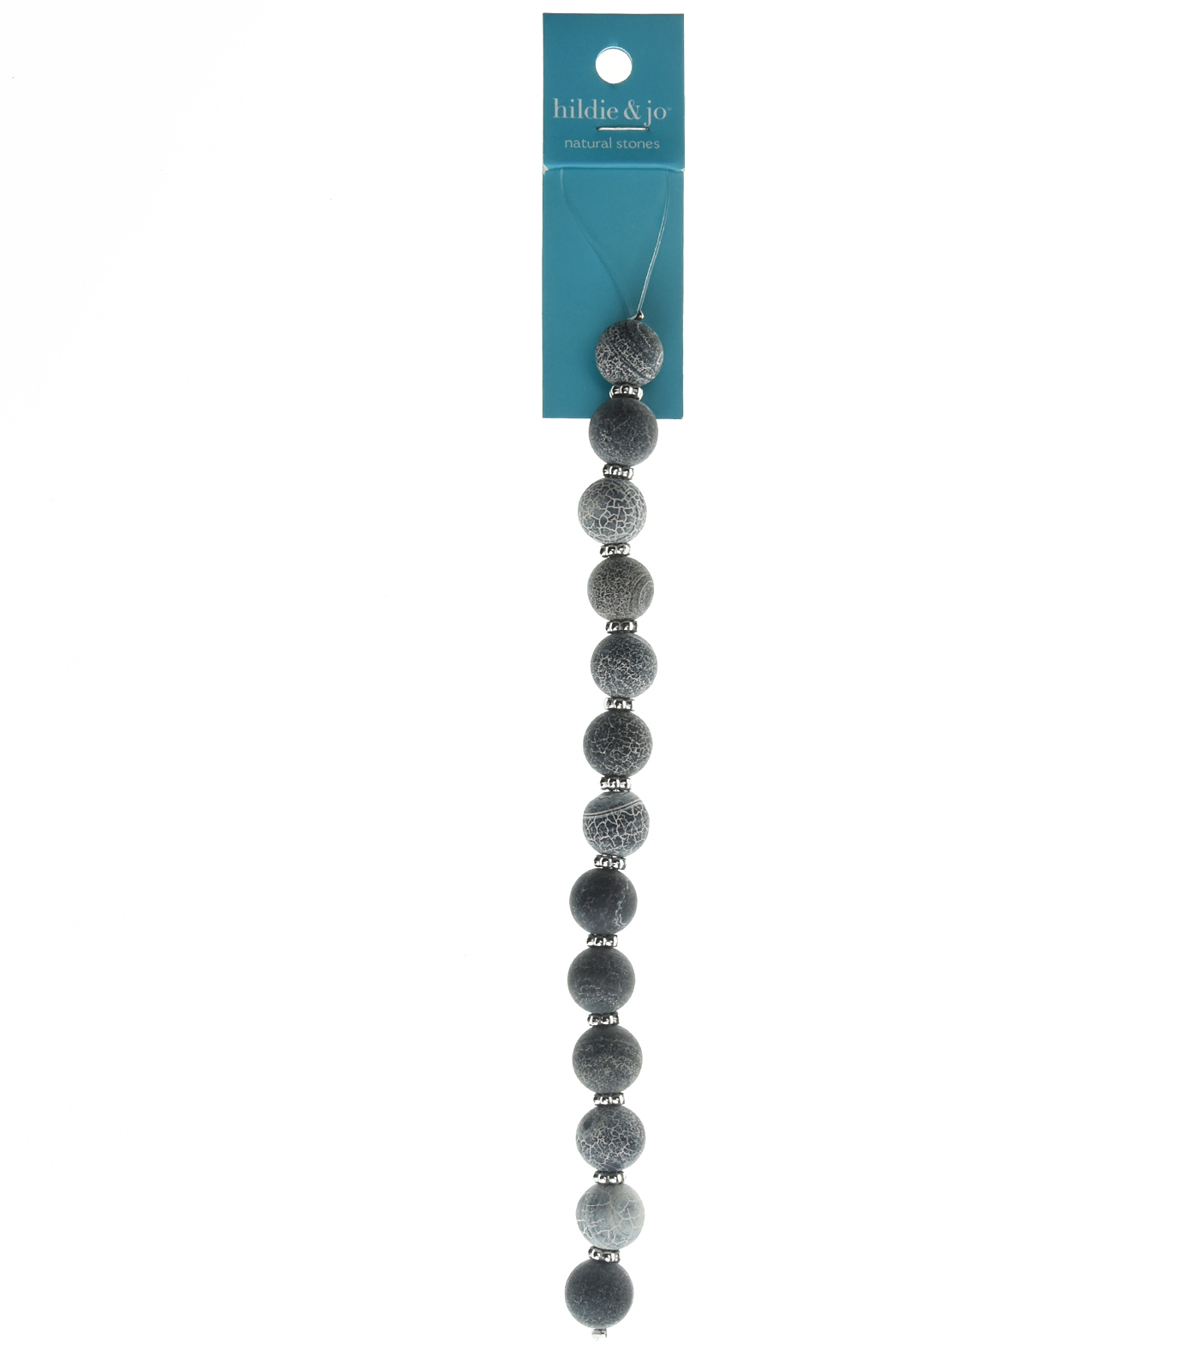 hildie & jo™ 7'' Round Beads Strand-White Pattern on Gray Stones